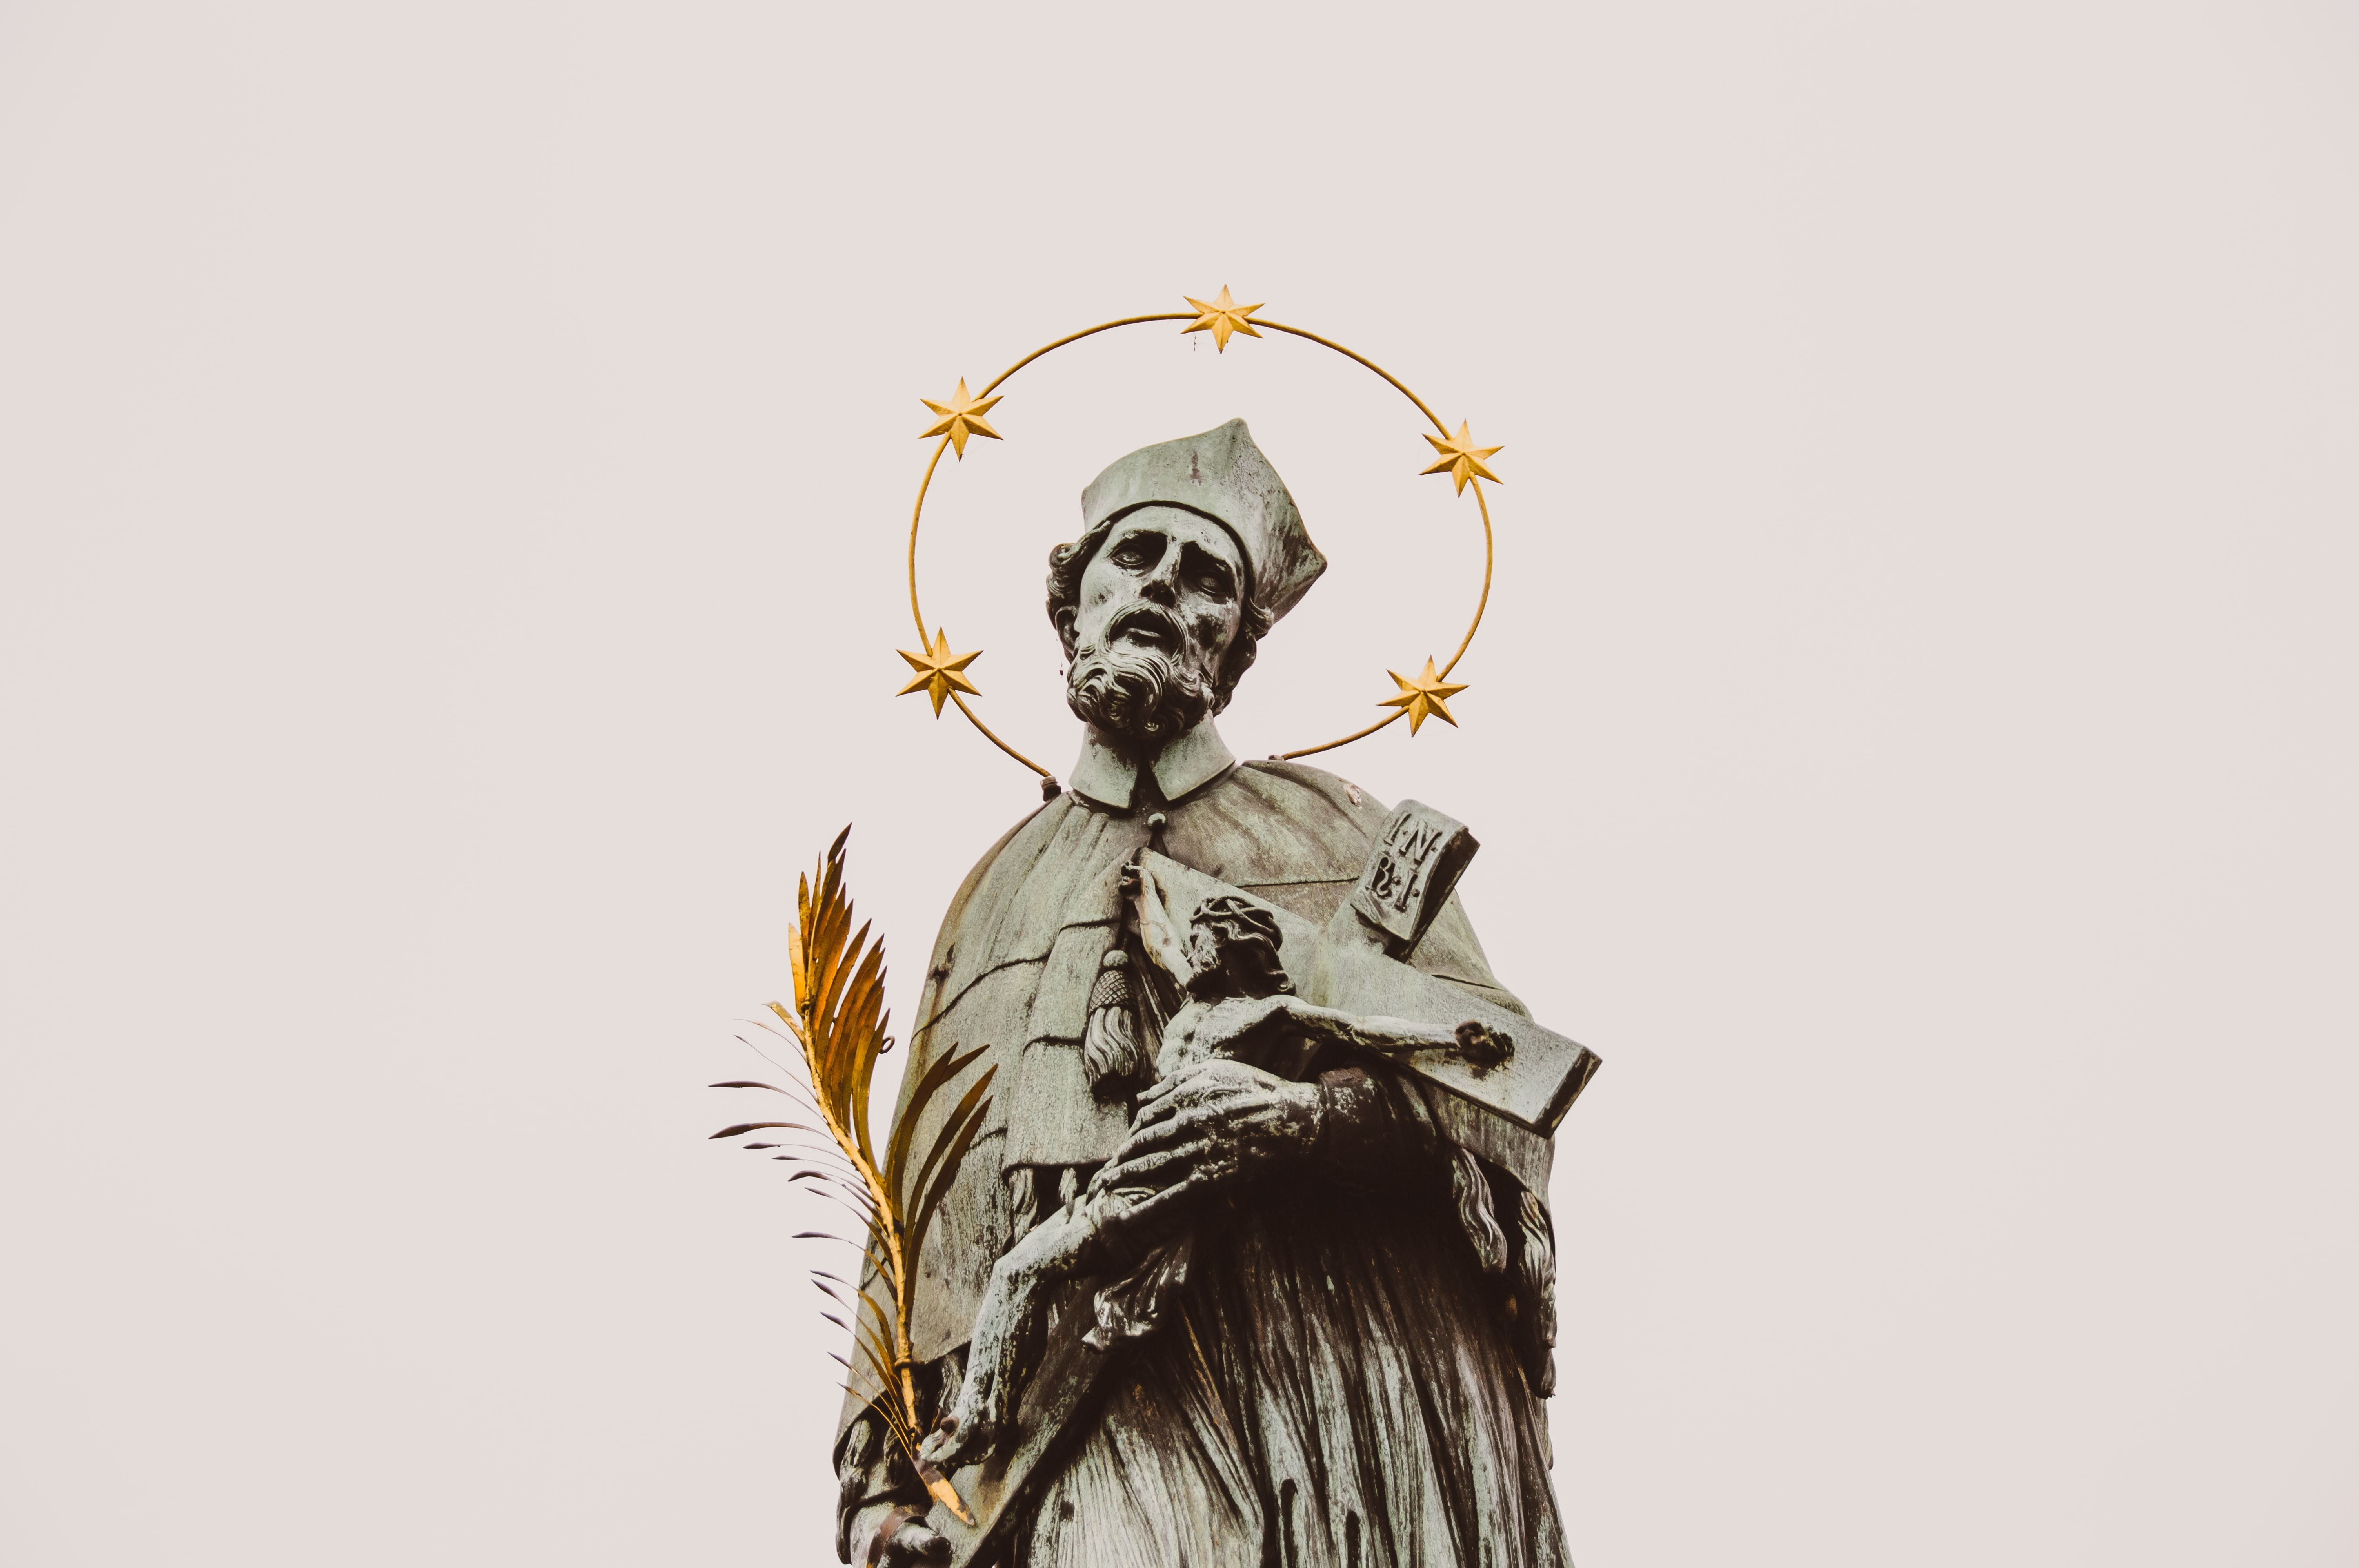 Stone statue of a saint and crucifix with a gold halo in Prague